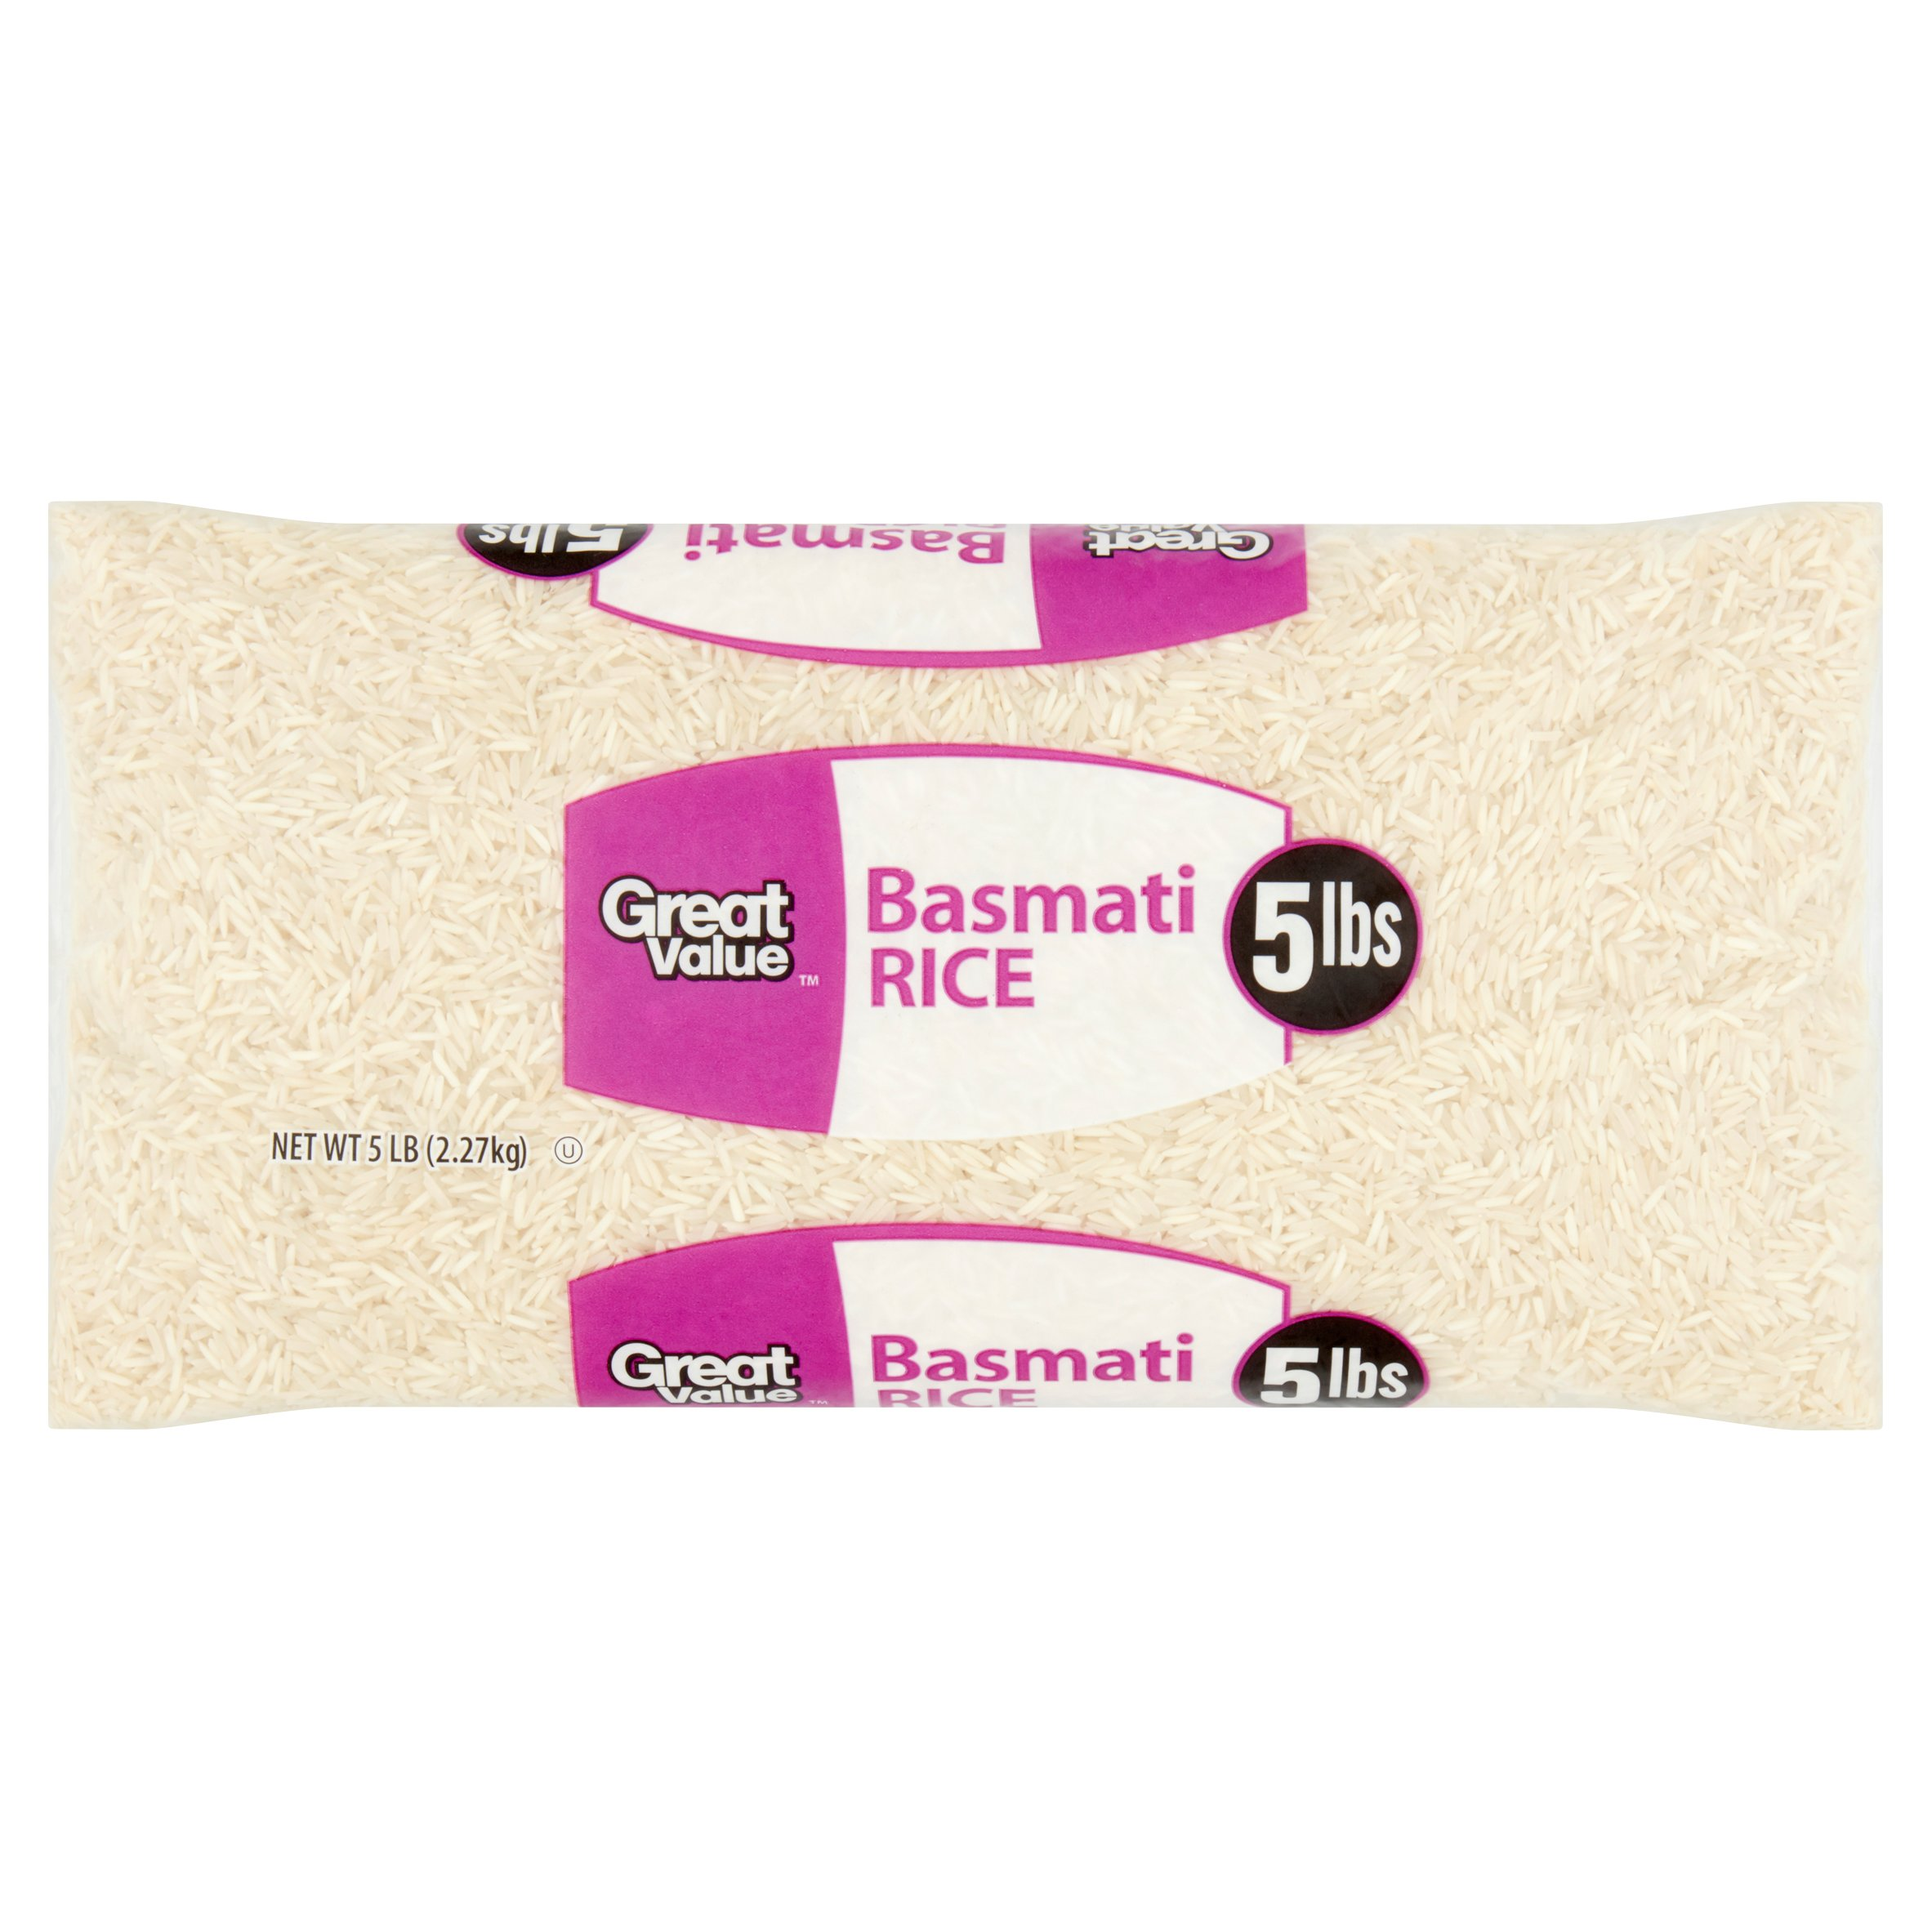 Great Value Basmati Rice, 5 lbs by Wal-Mart Stores, Inc.